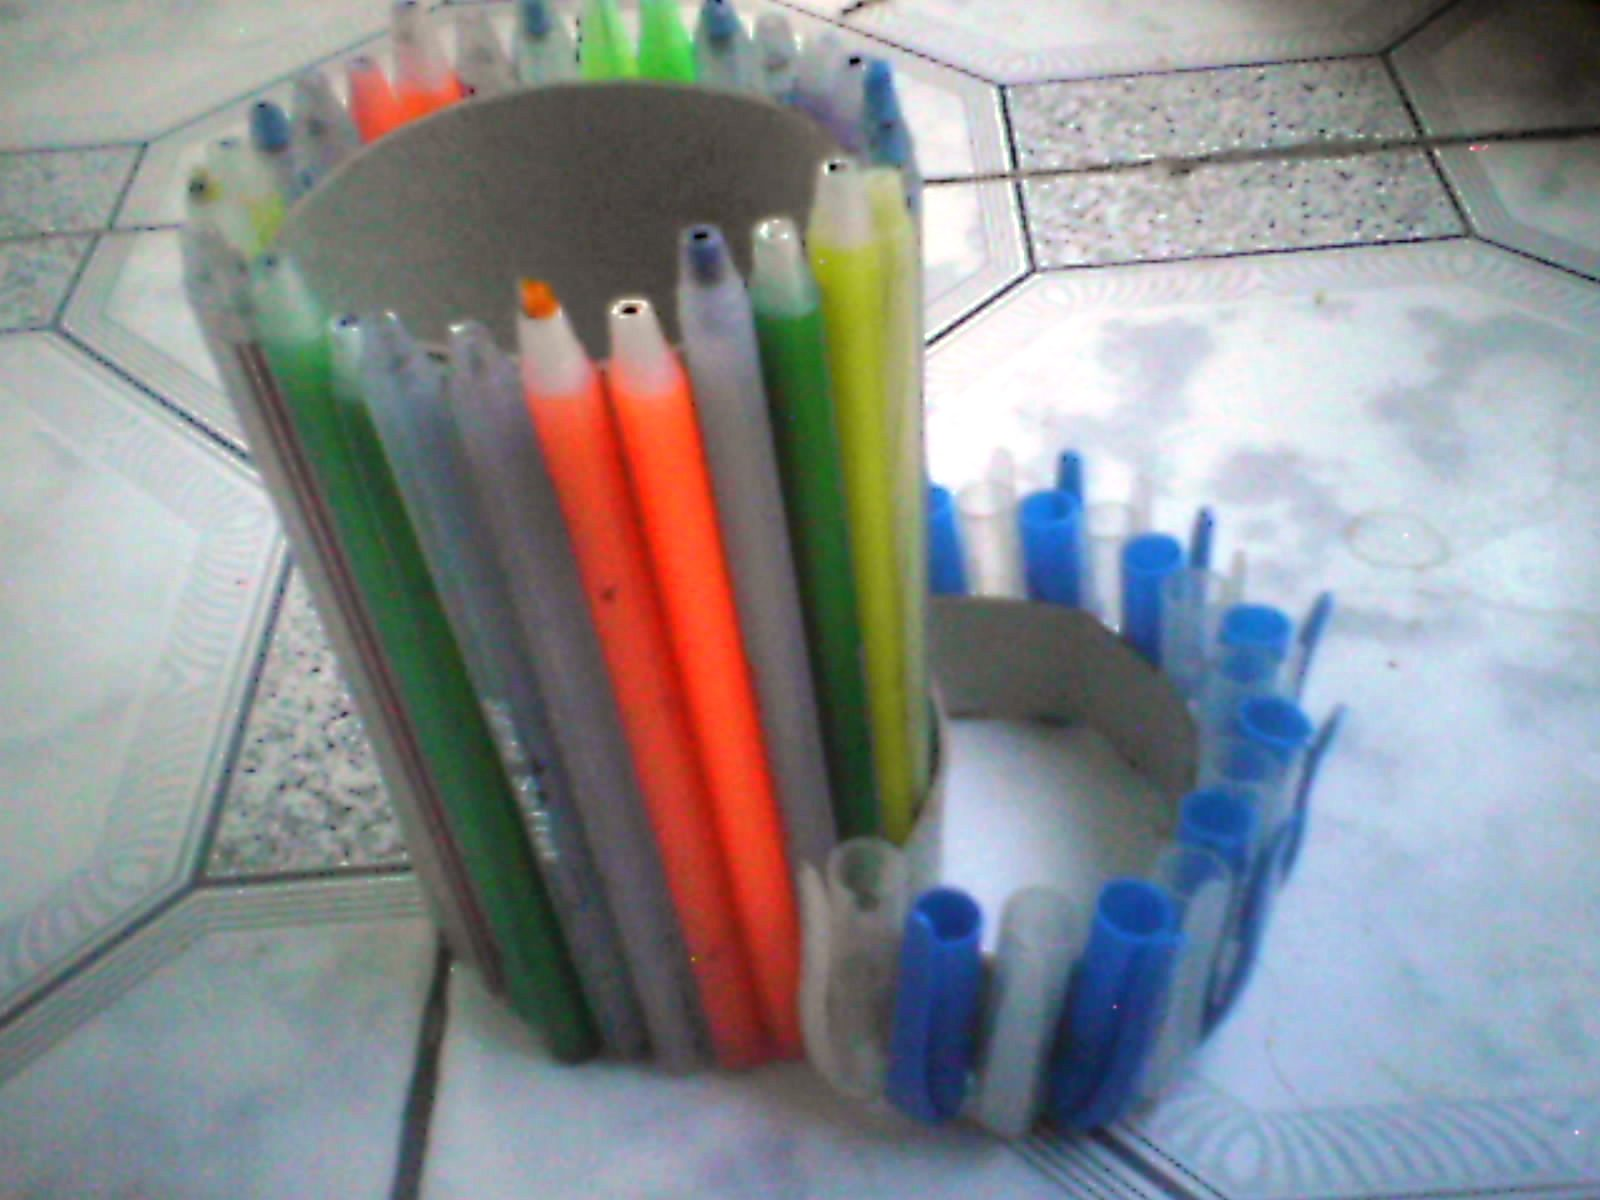 smartart: Pen Stand with disposal plastic pens